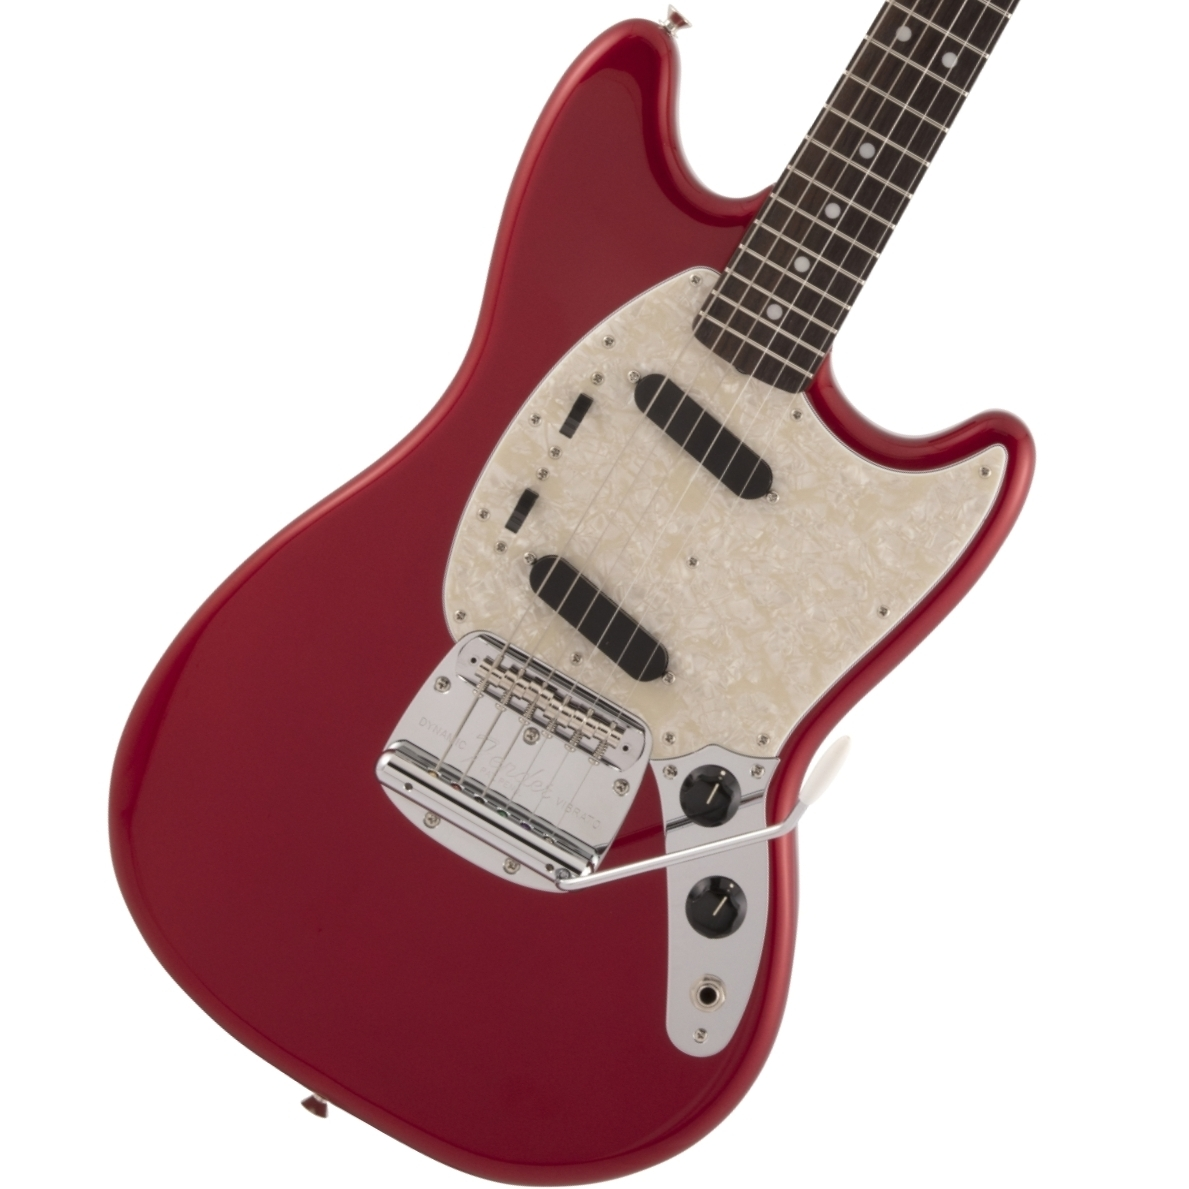 Fender / 2020 Collection Made in Japan Traditional 70s Mustang Rosewood Fingerboard Candy Apple Red フェンダー【2020年内限定モデル】【御茶ノ水本店】